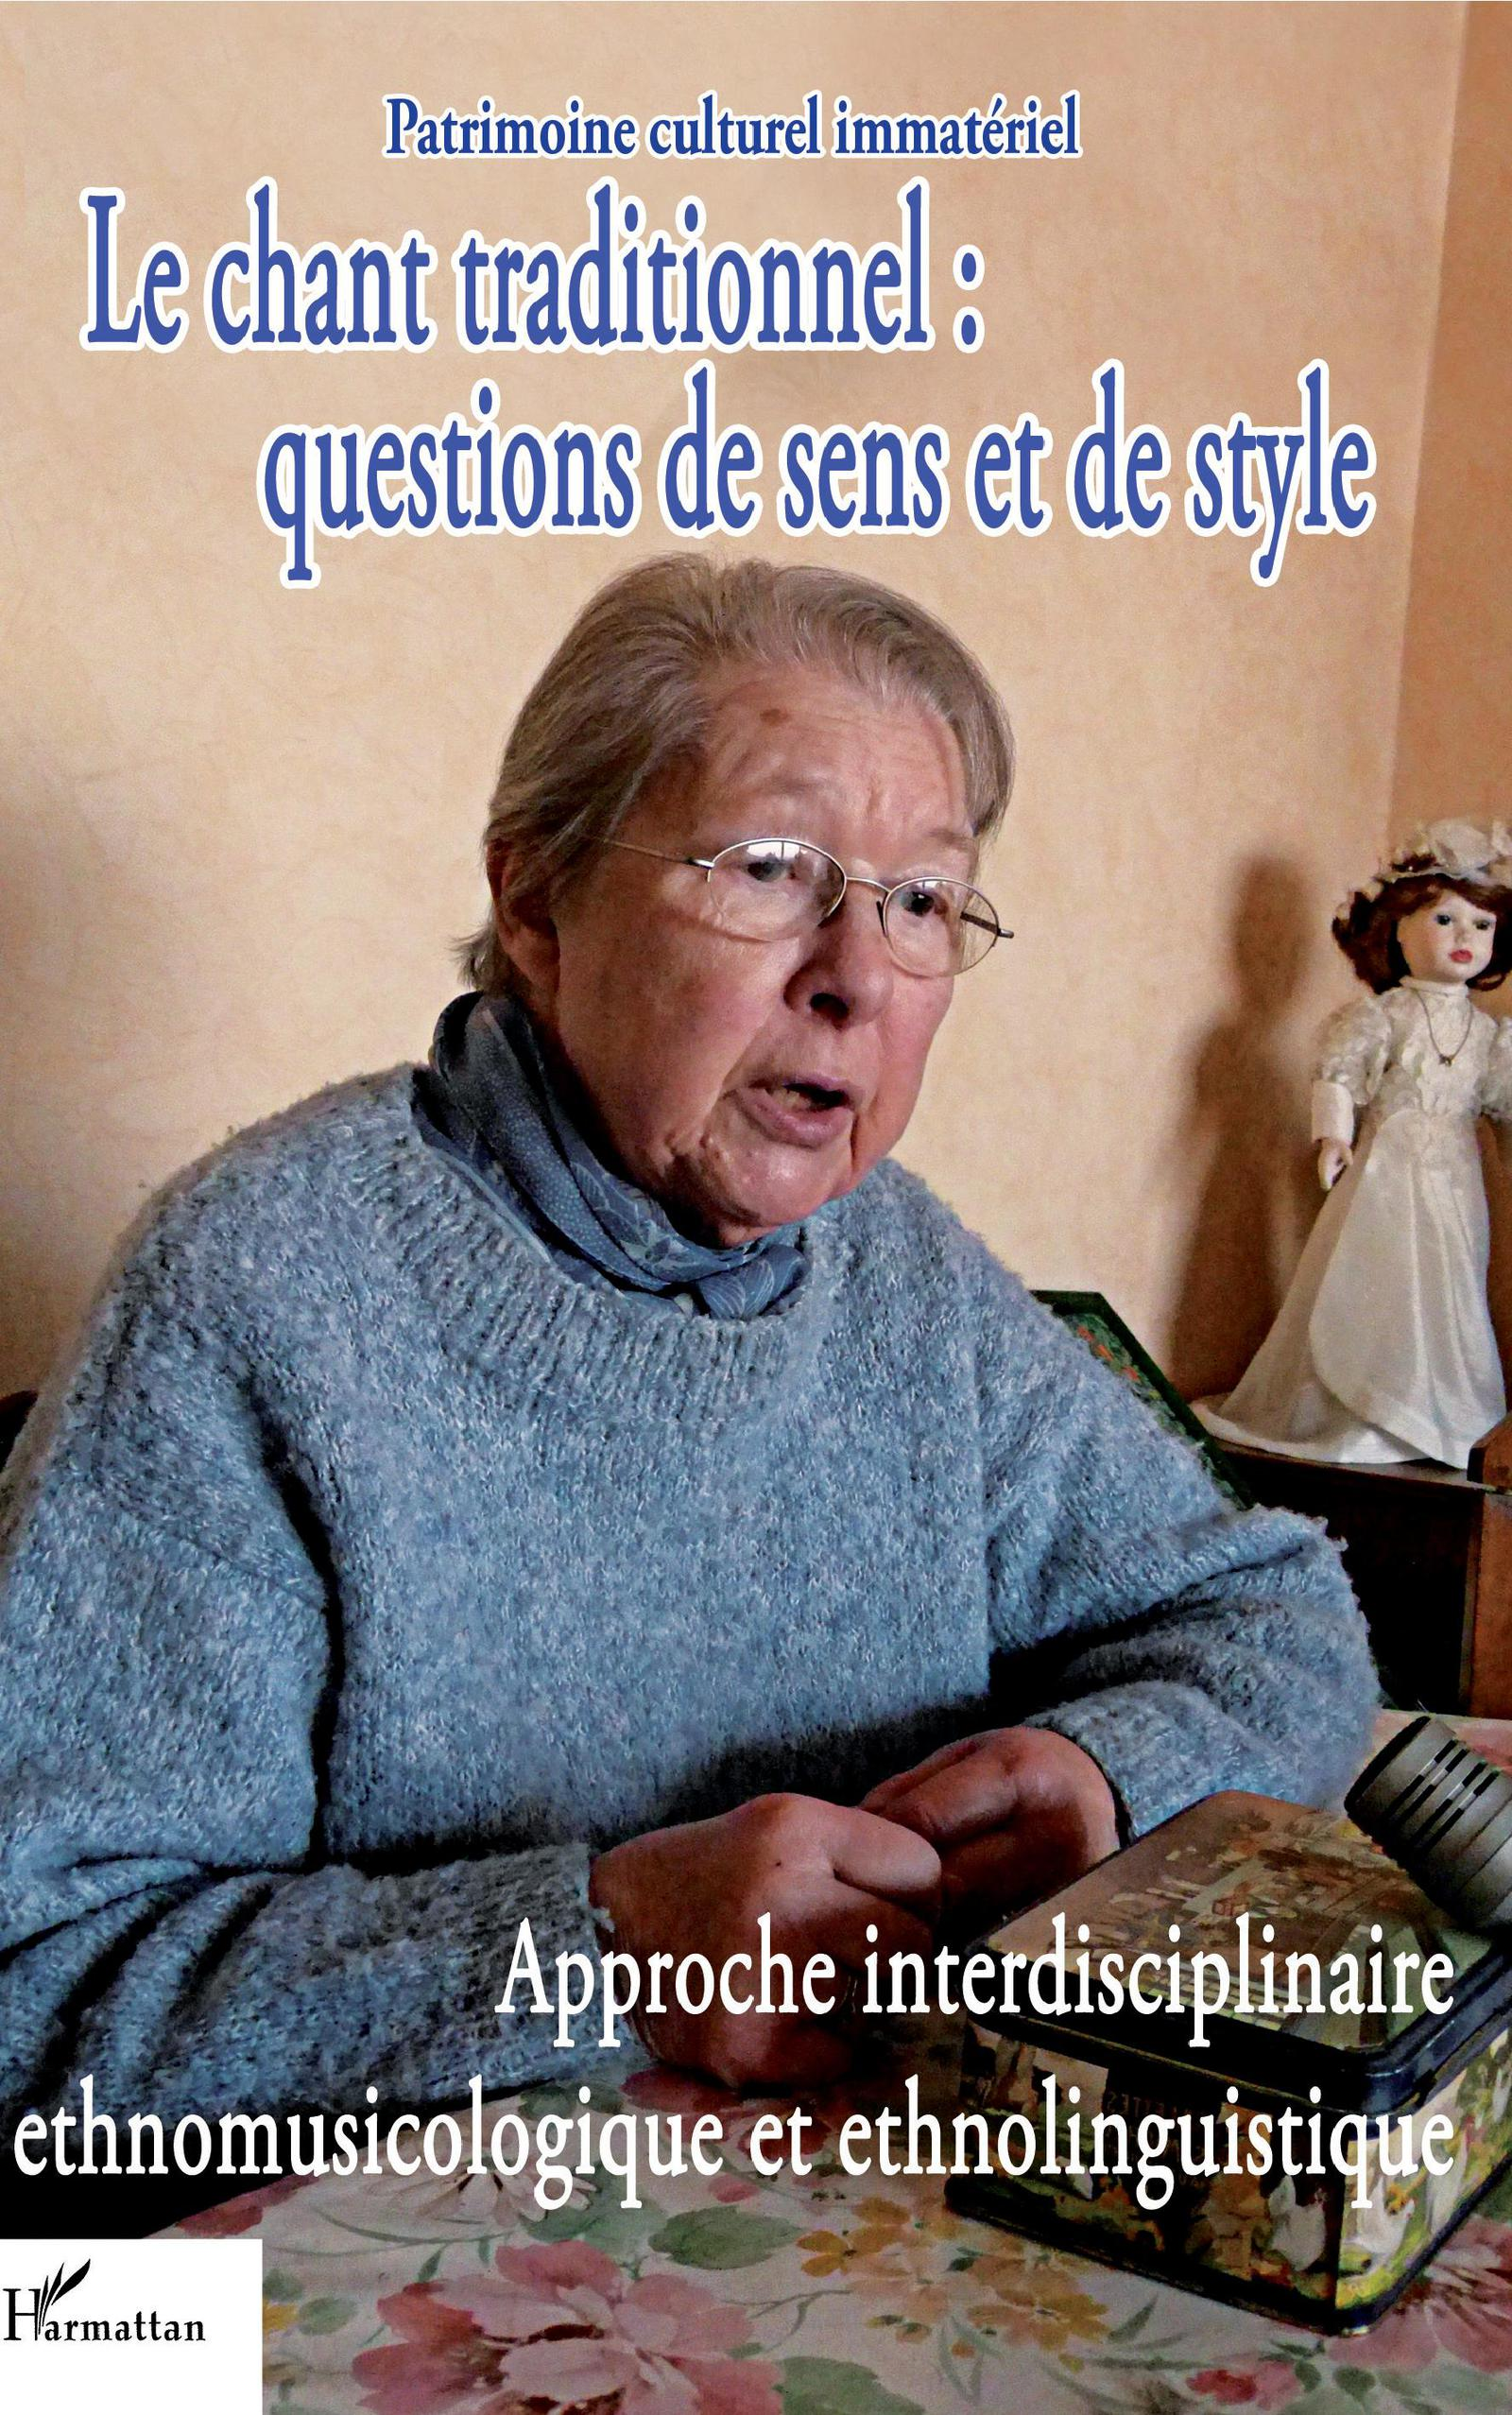 Le chant traditionnel : questions de sens et de style